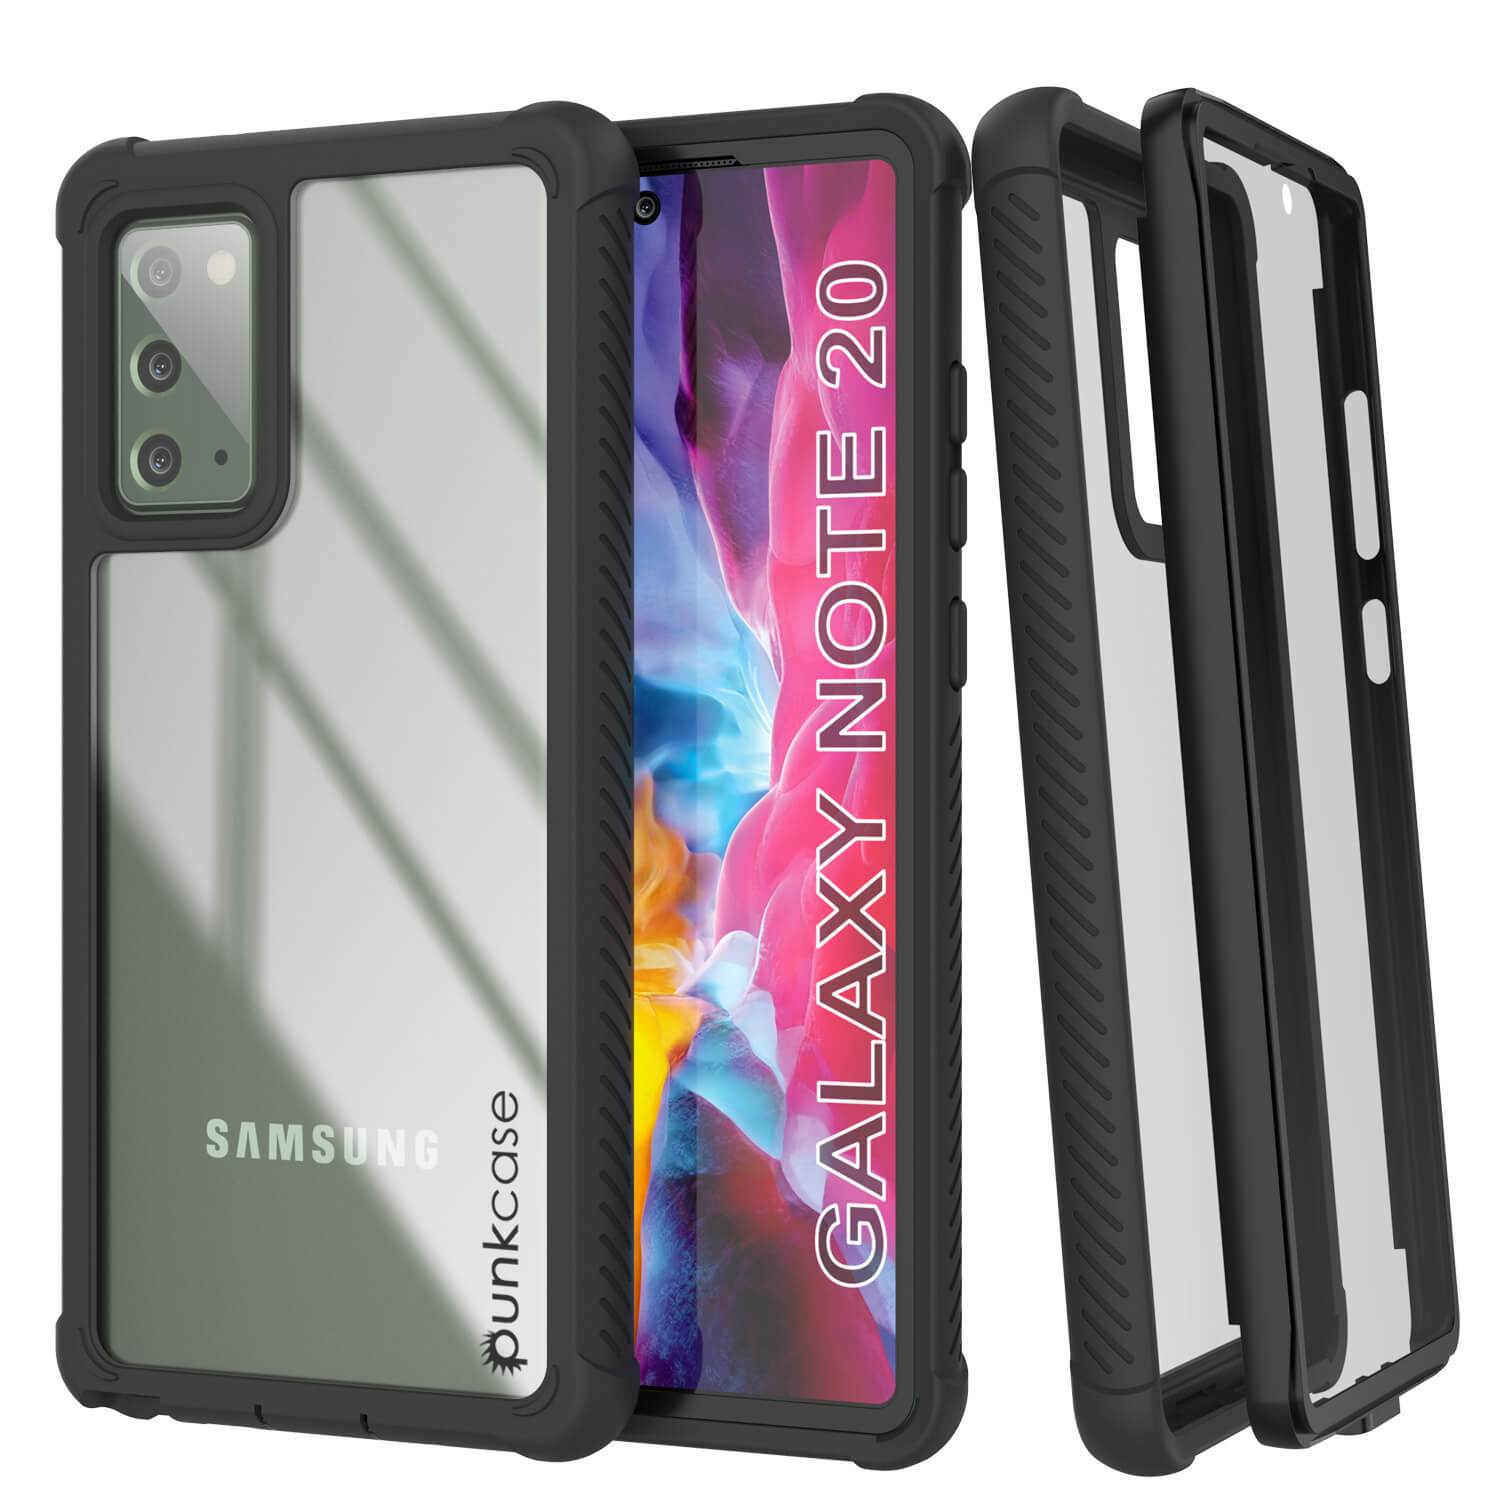 Punkcase Galaxy Note 20 Case, [Spartan Series] Black Rugged Heavy Duty Cover W/Built in Screen Protector